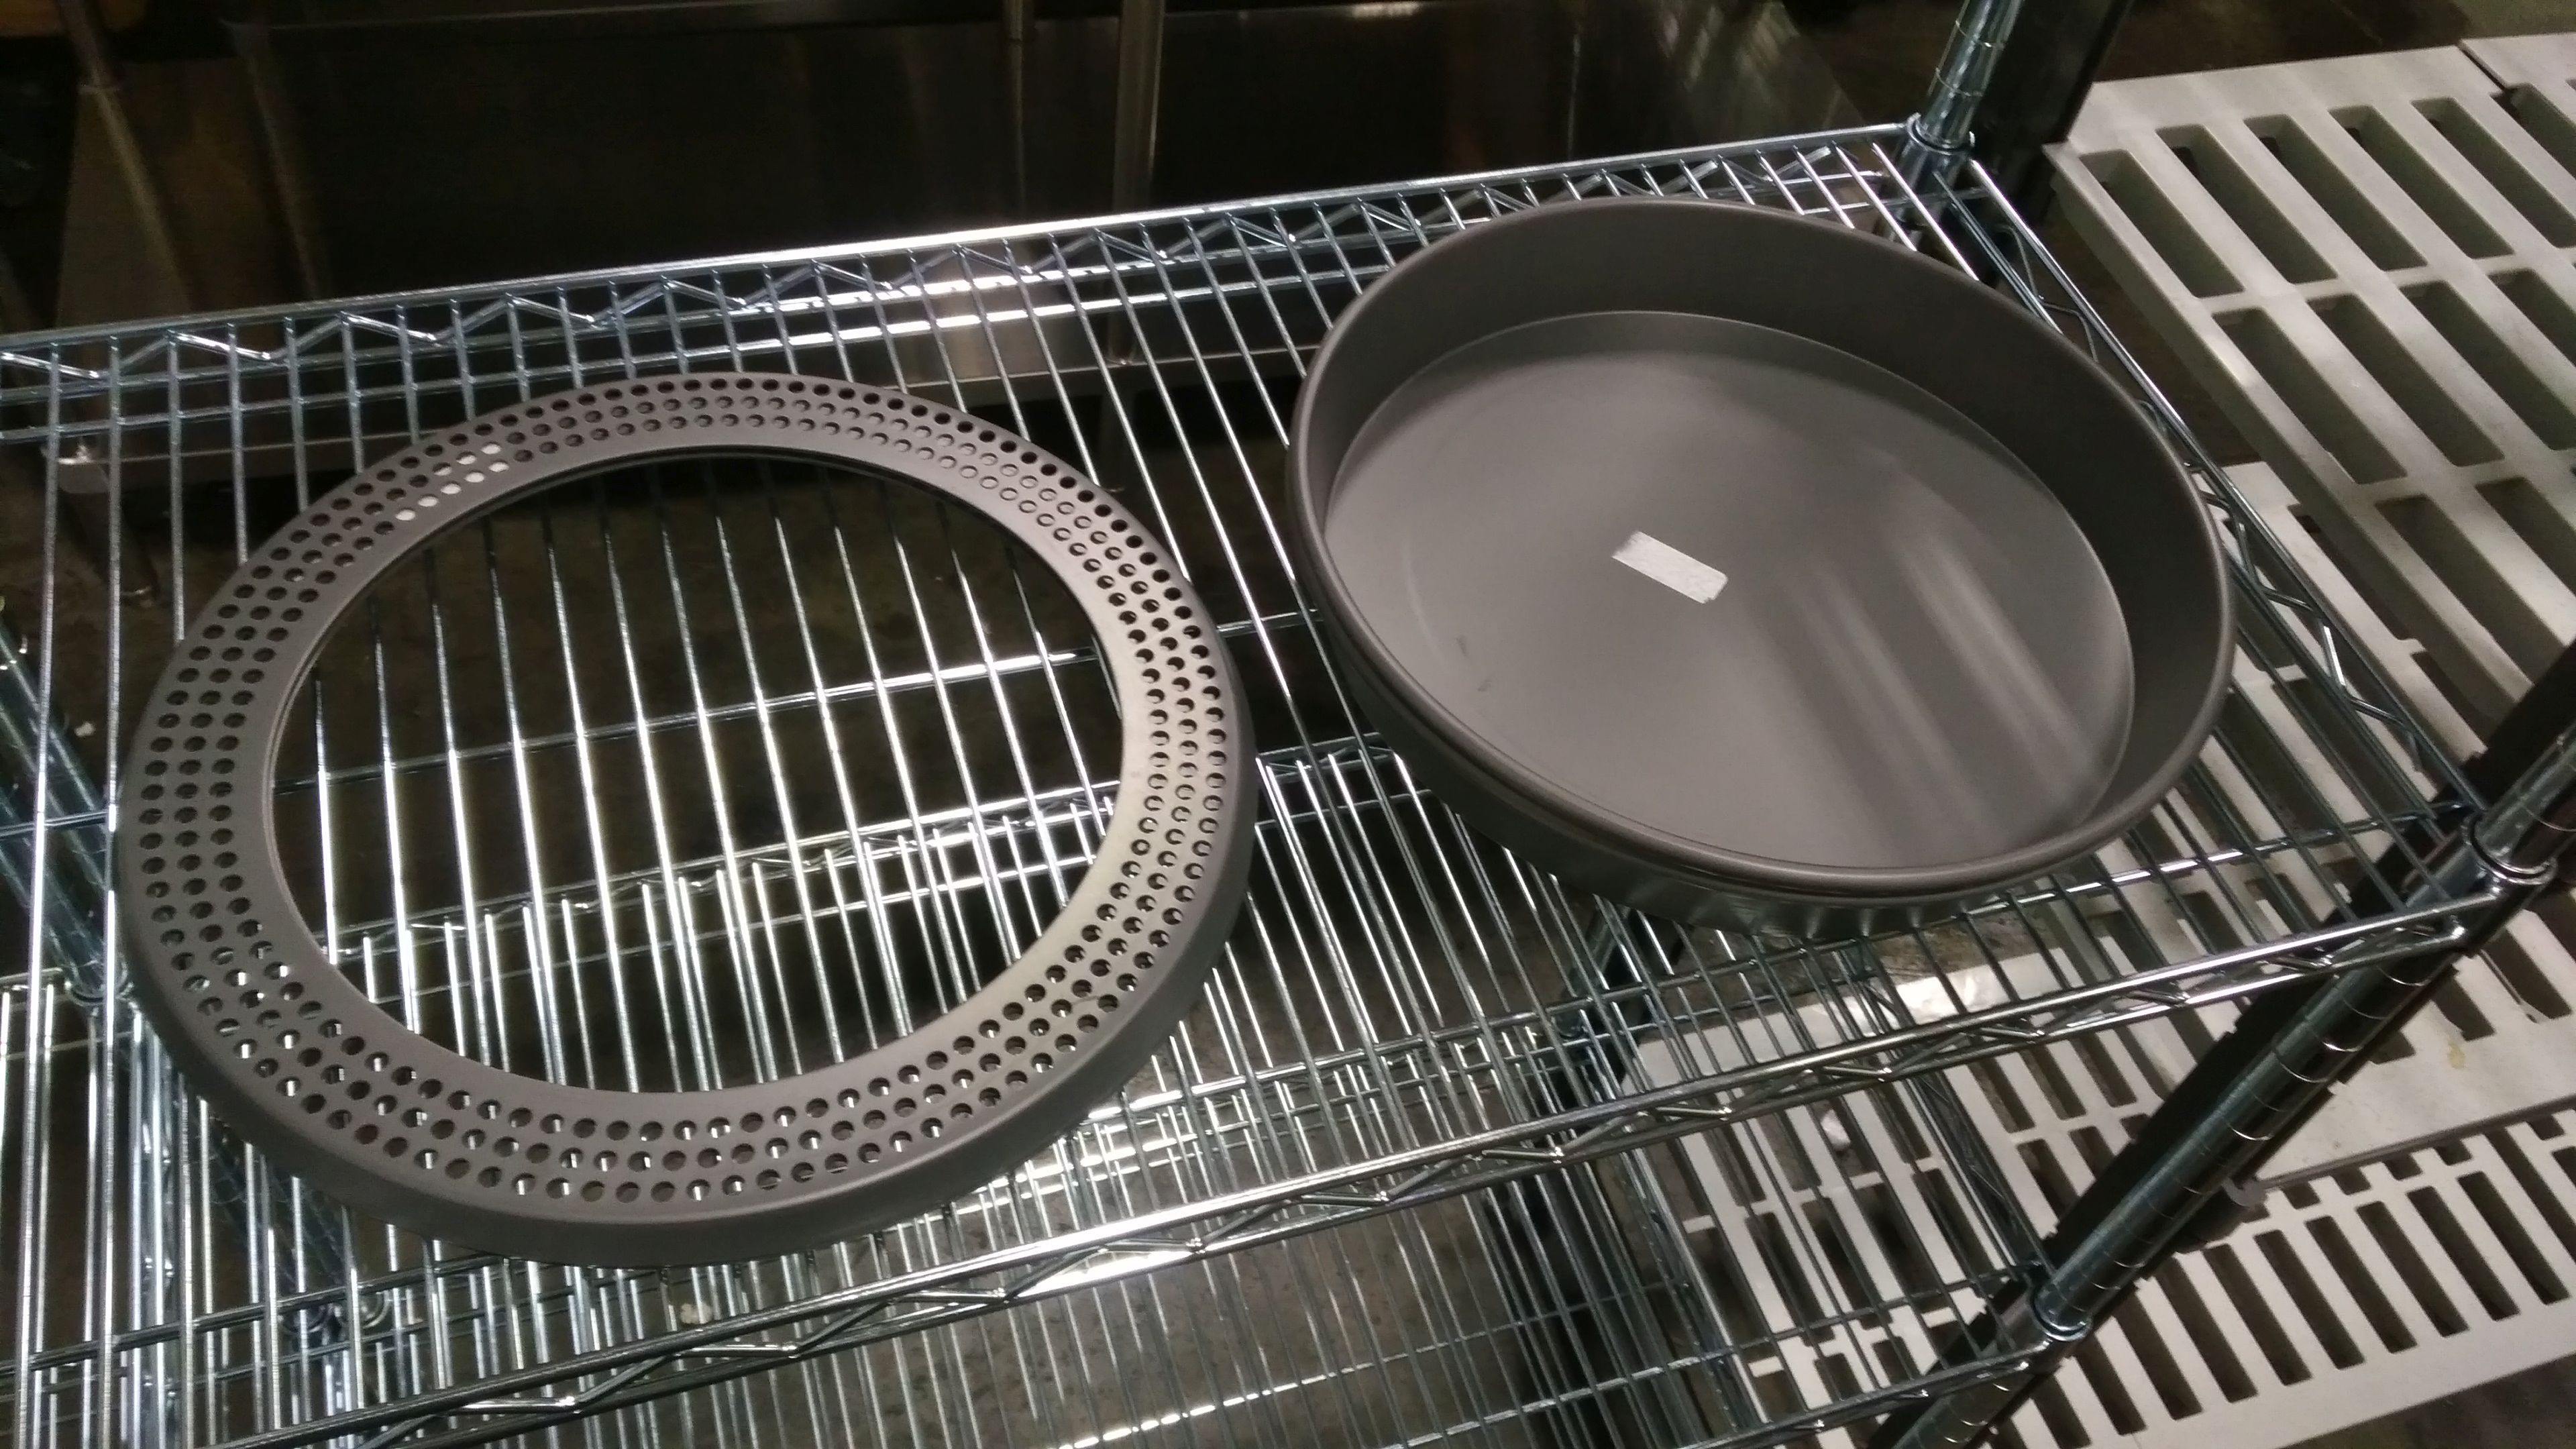 "Lot 1 - 13"" Pizza Pans with No-Burn Ring - Lot of 2 (4 Pieces)"